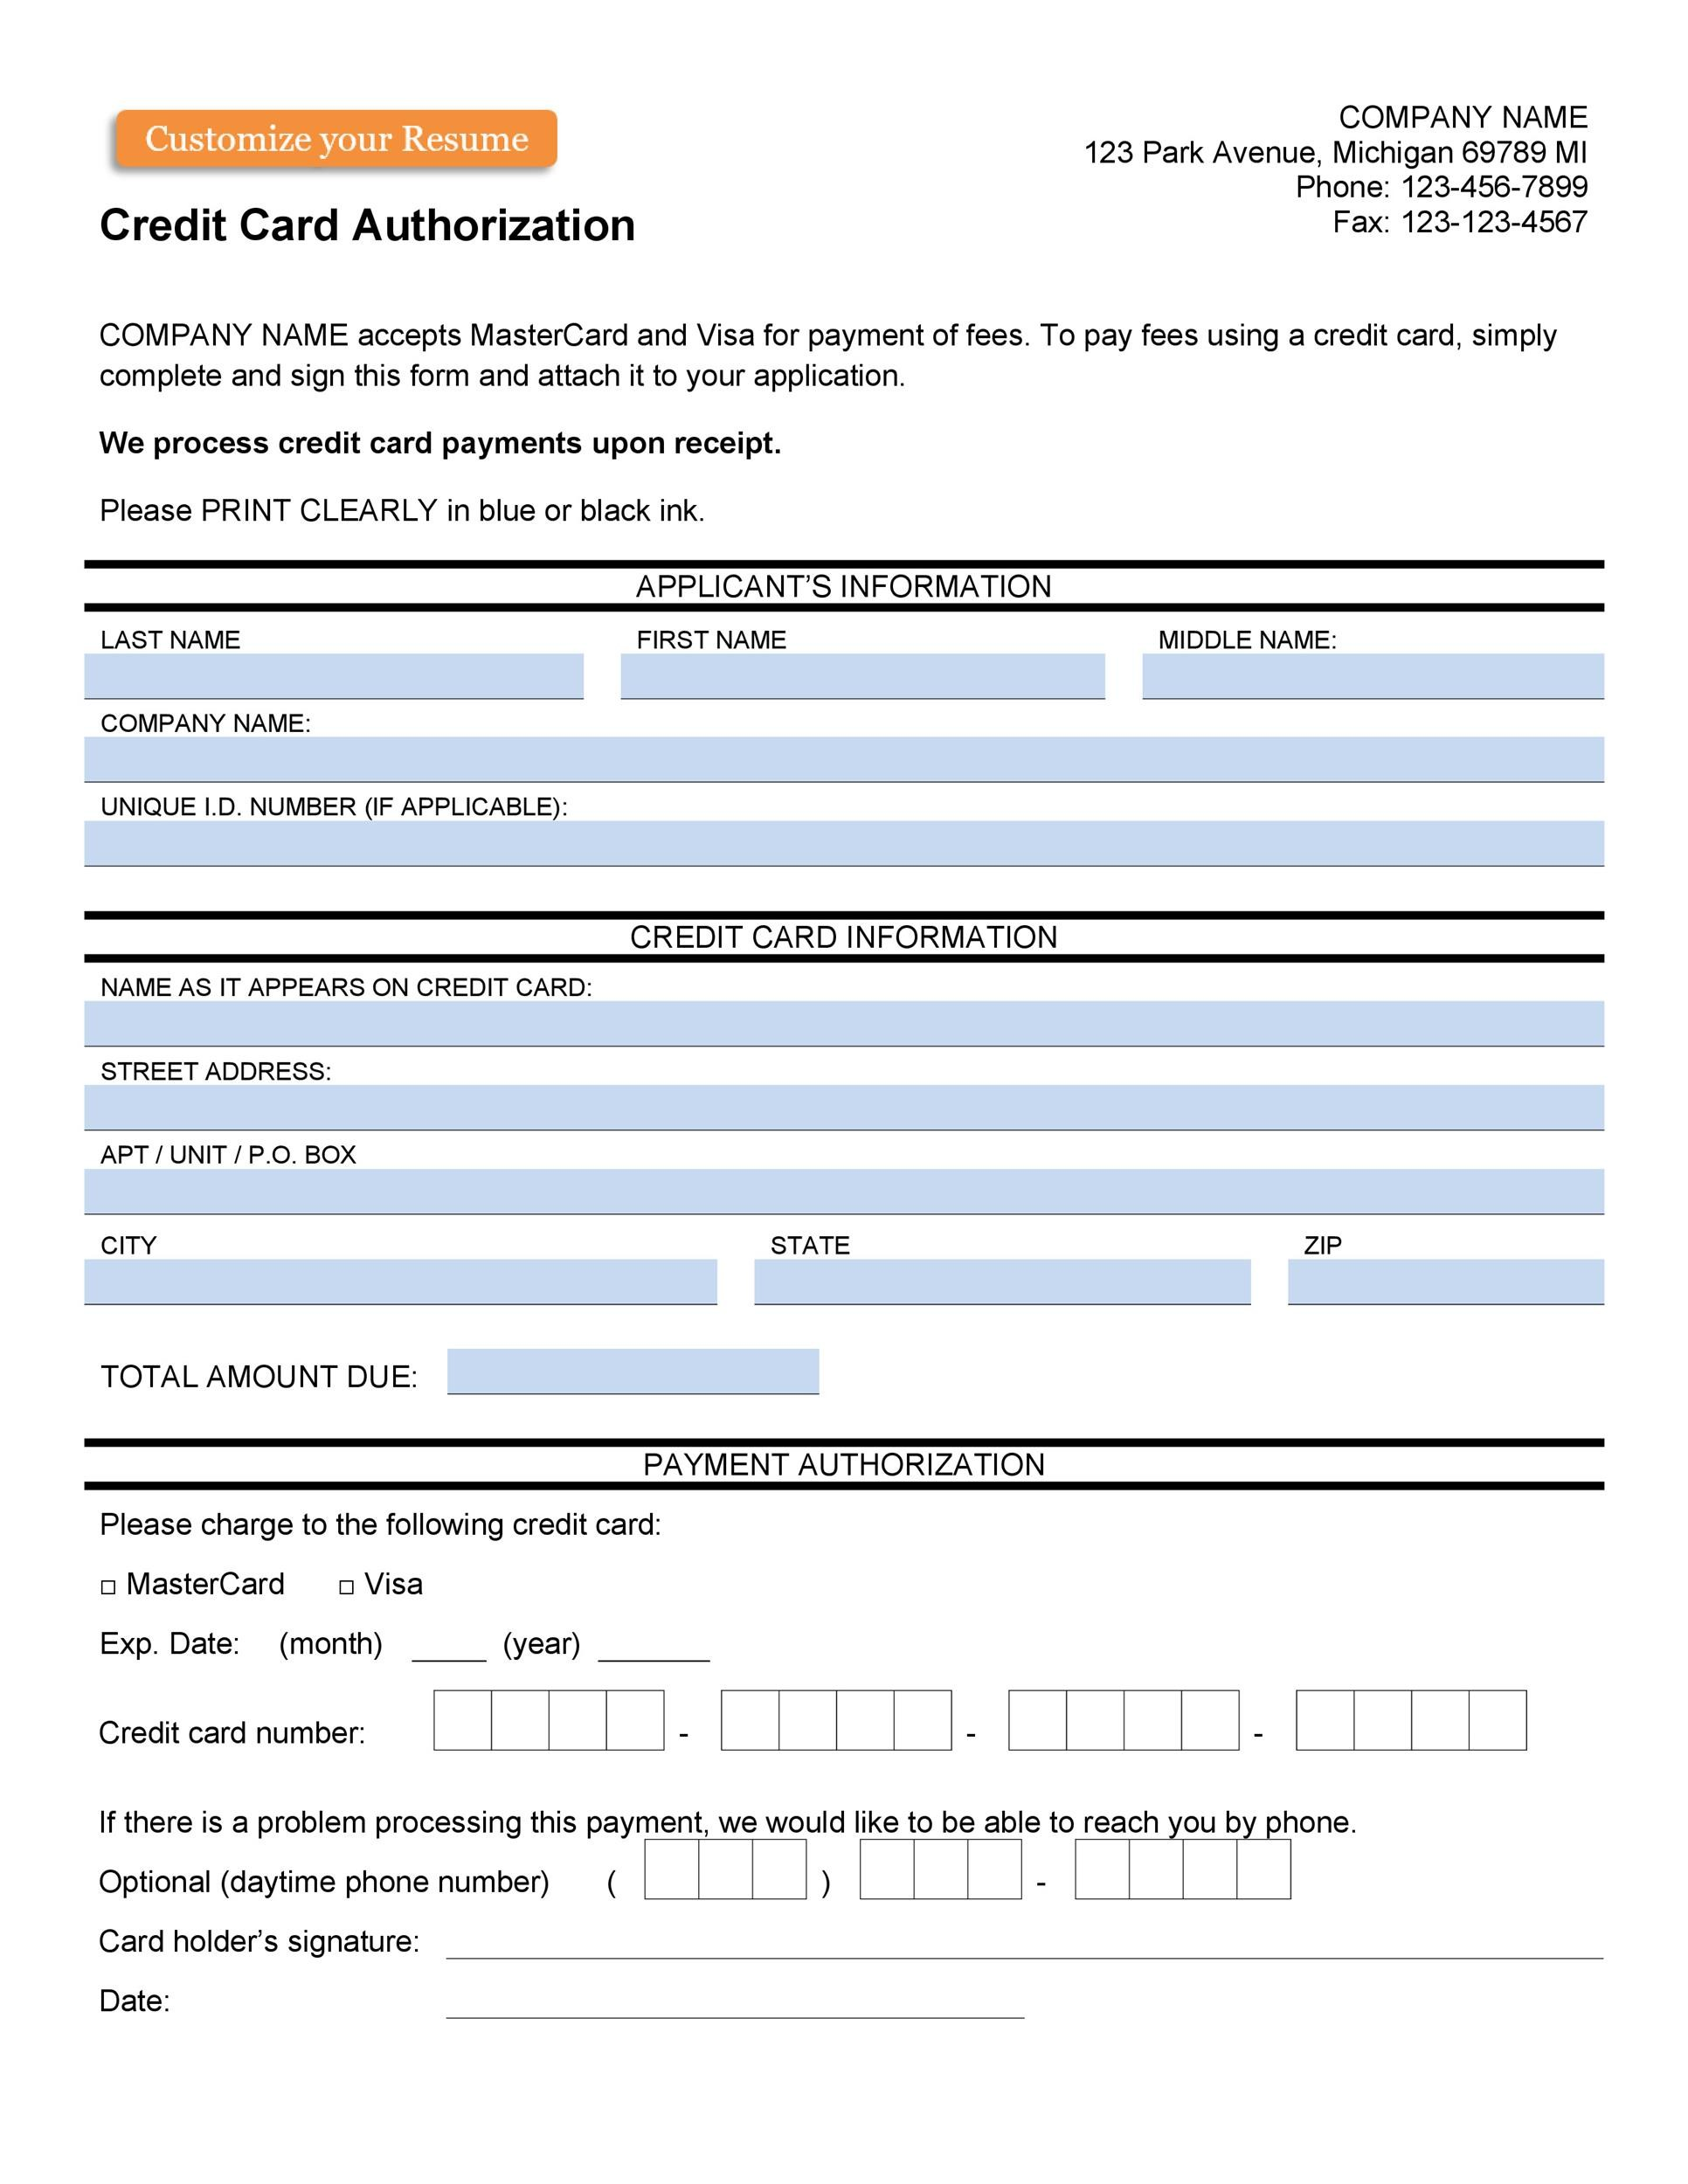 Free credit card authorization form template 29